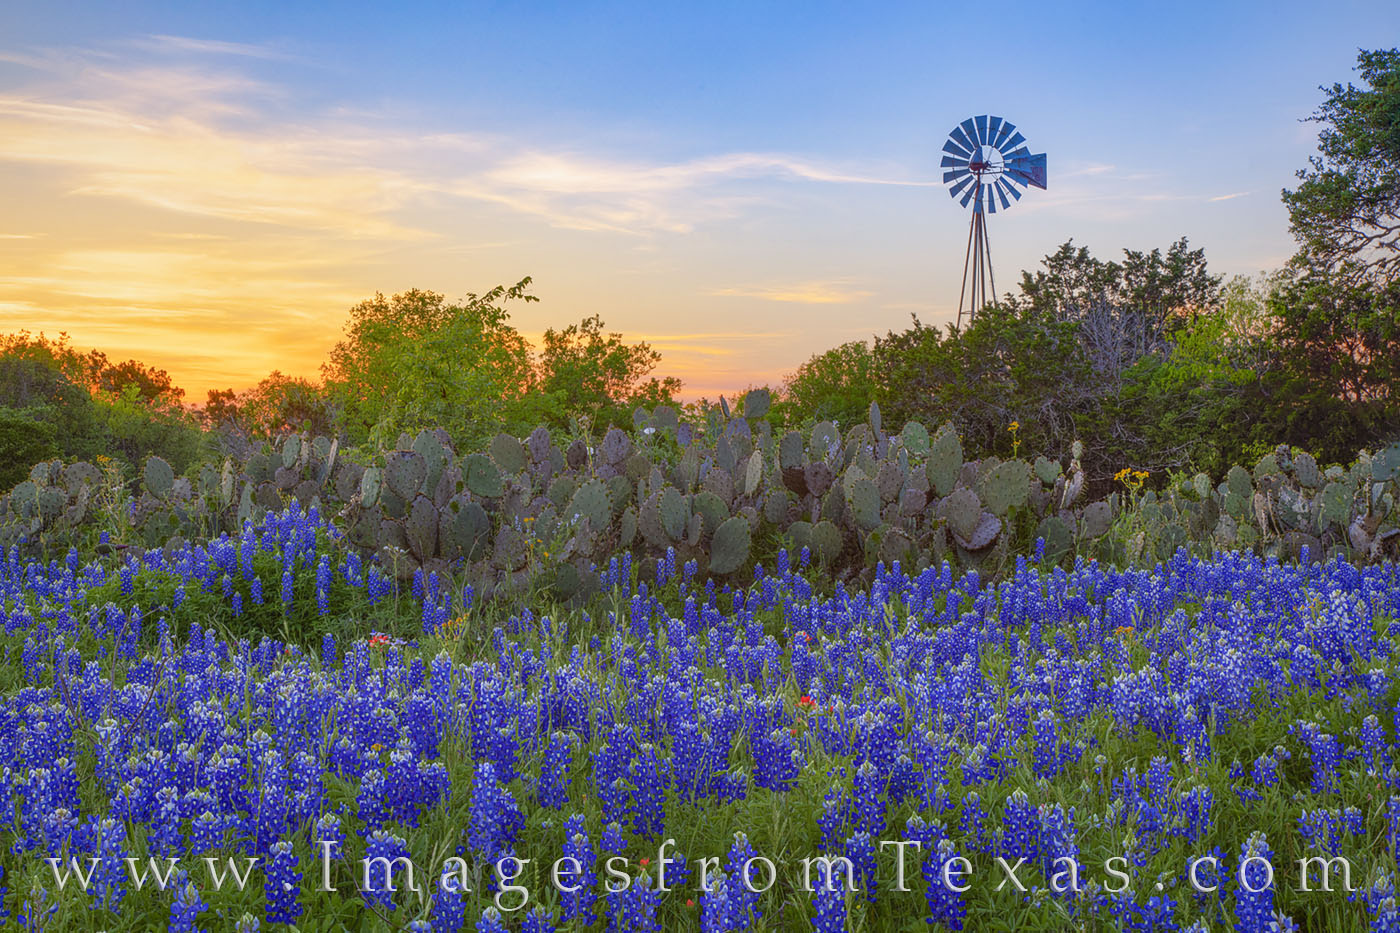 Bluebonnets, windmill, Johnson city, hill country, wildflowers, cacti, april, spring, 1320, evening, sunset, photo